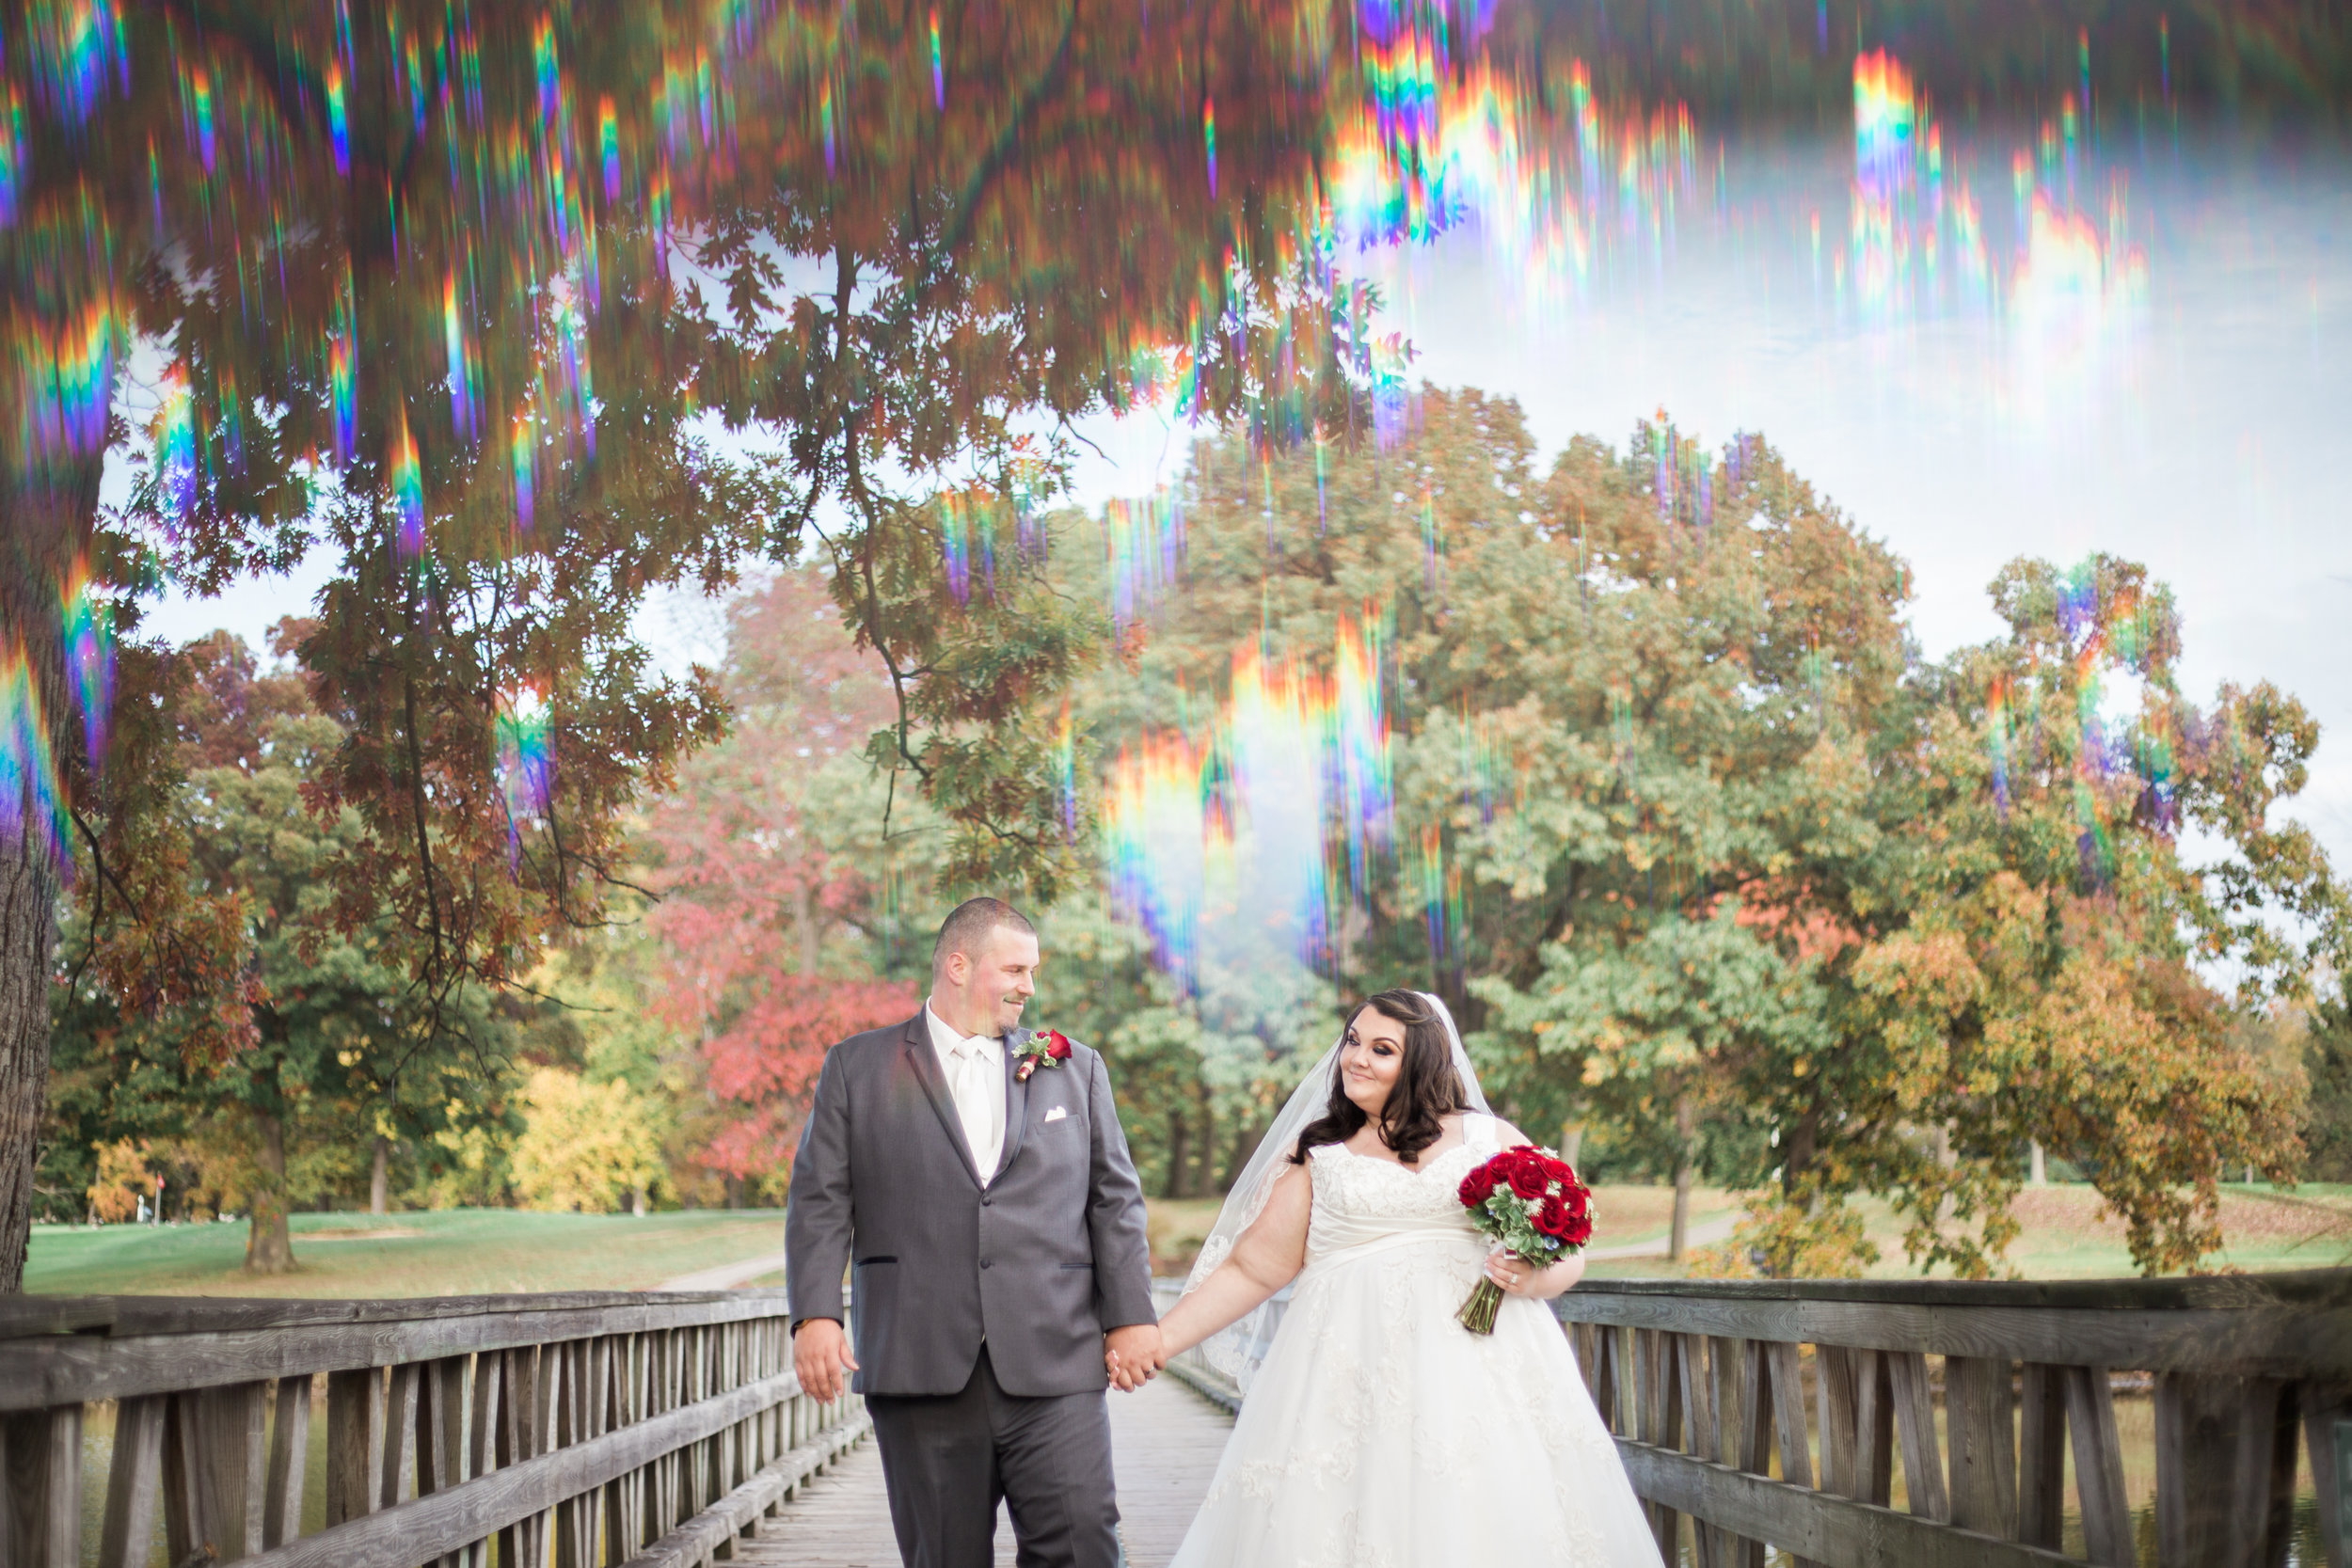 Best Husband and Wife Wedding Photographers in Glen Burnie Maryland.jpeg